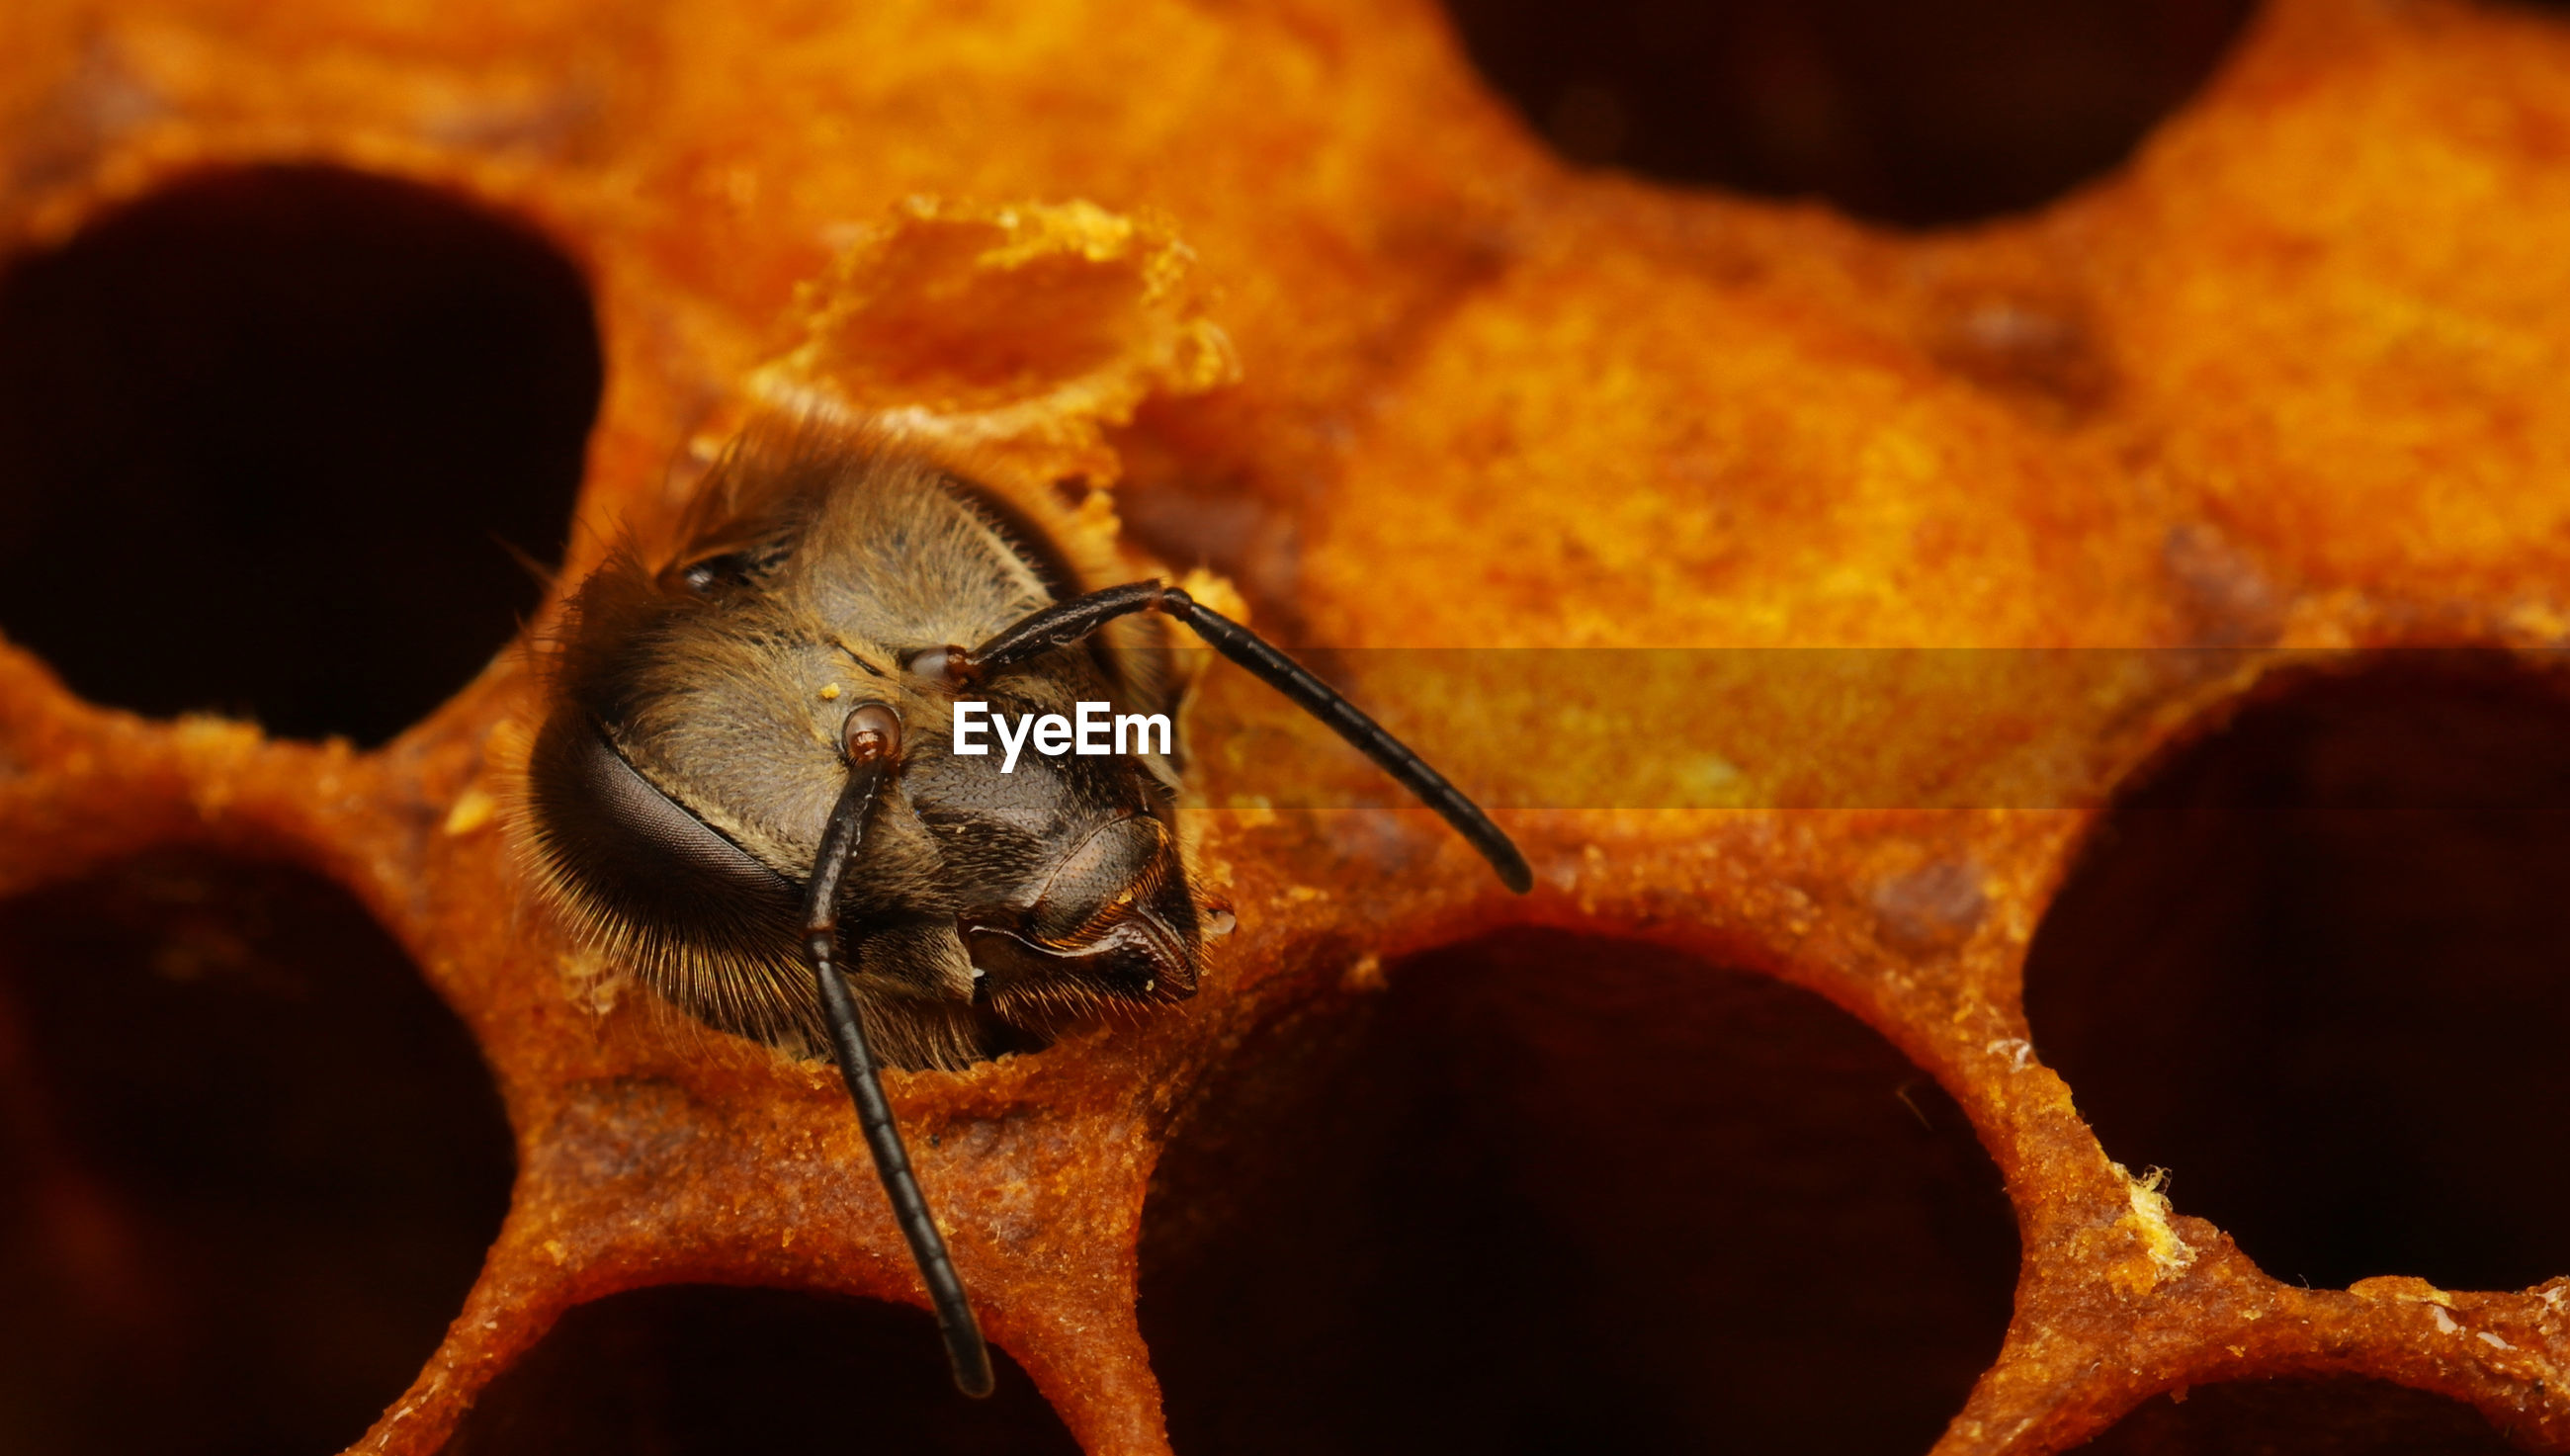 High angle view of honey bee in honeycomb